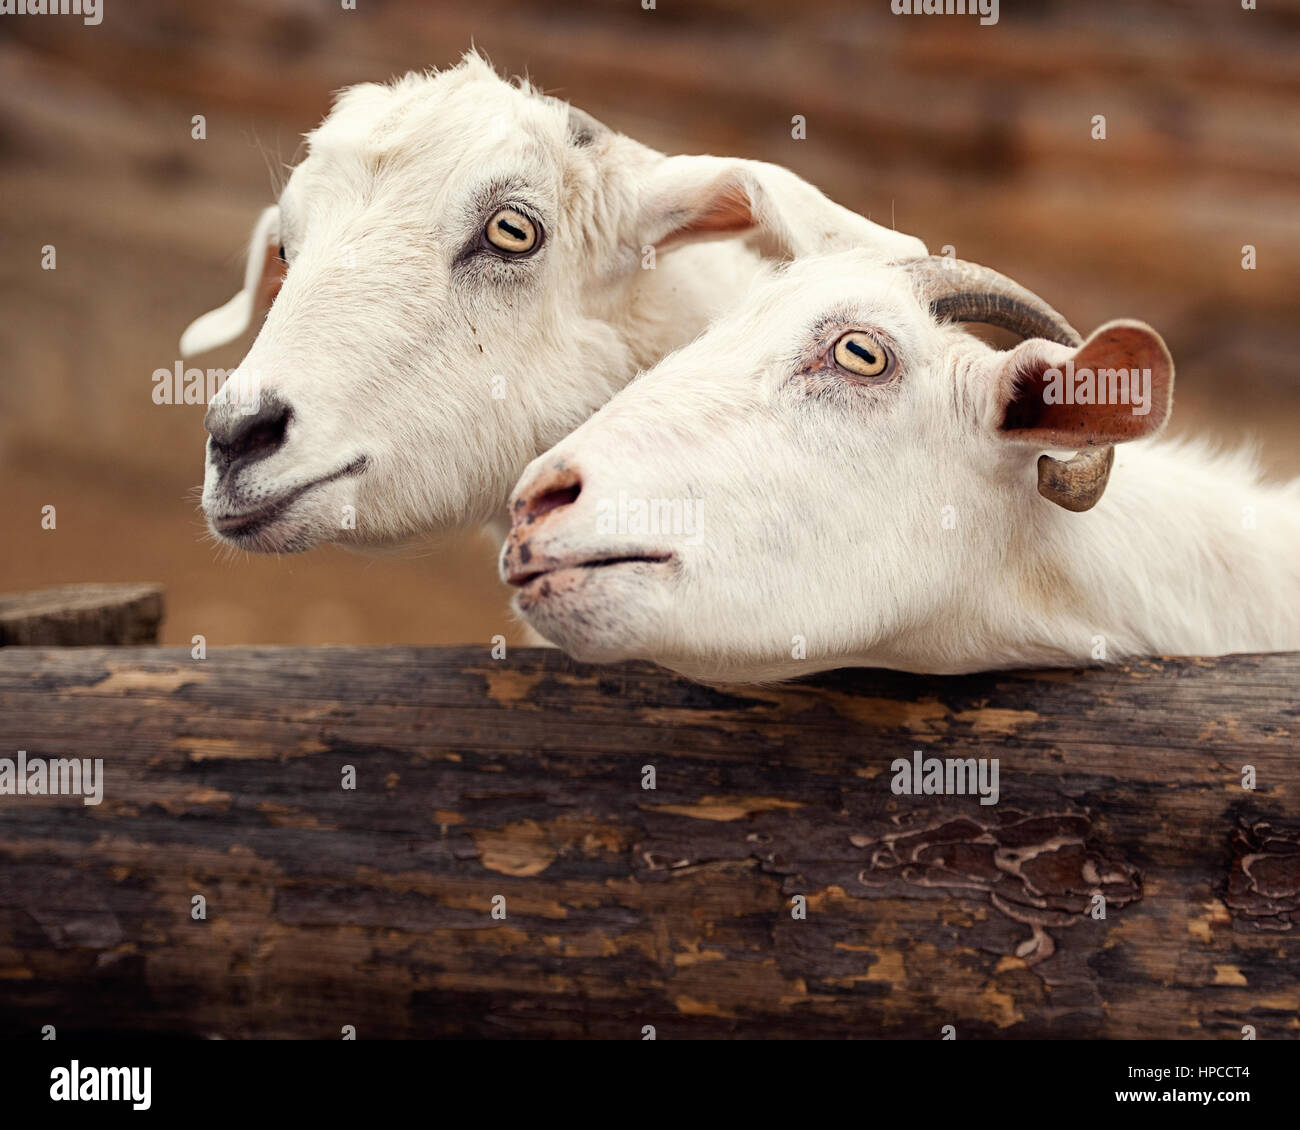 Close-Up Of White Goats - Stock Image